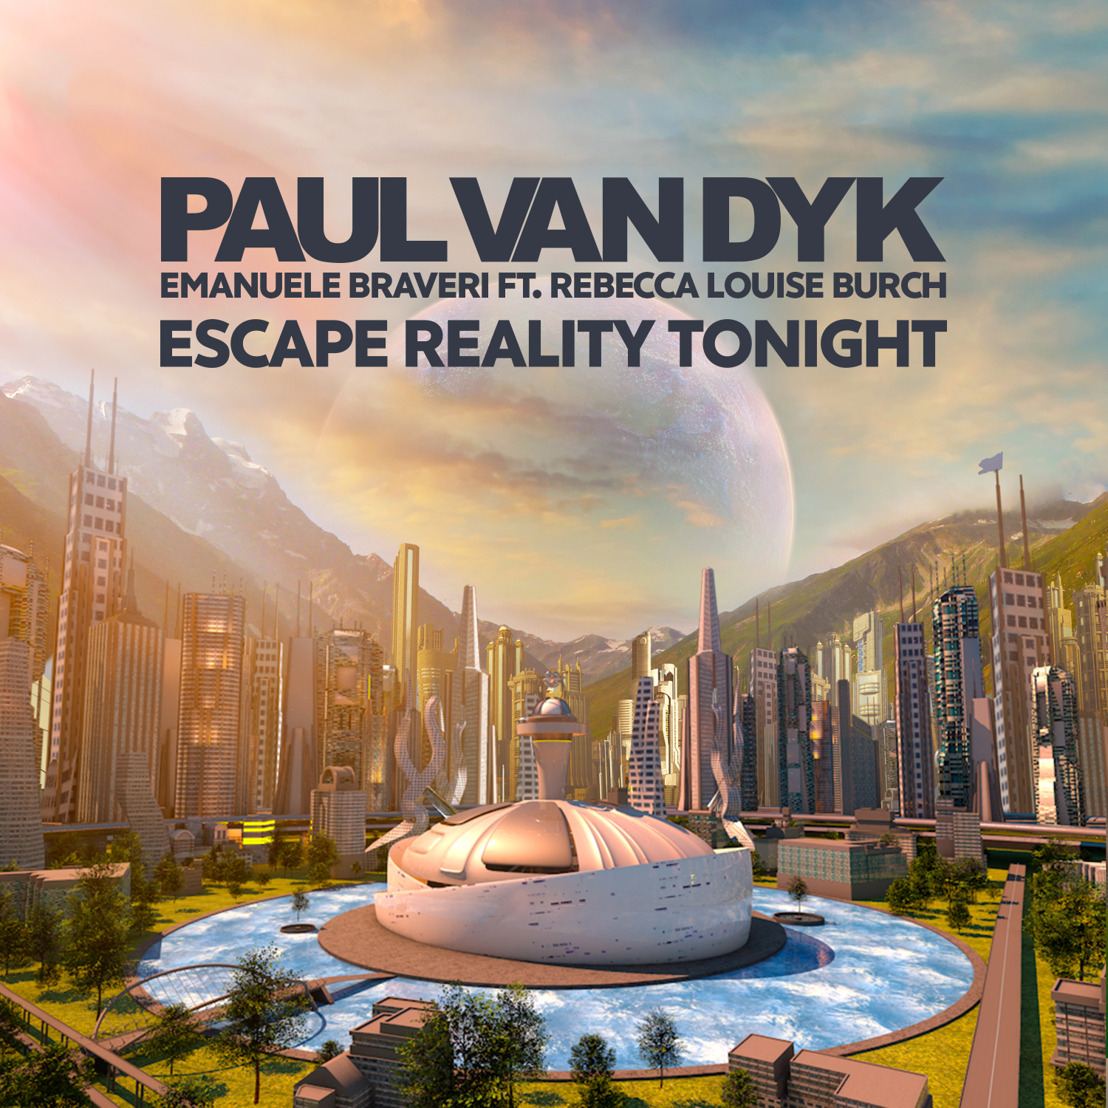 Paul van Dyk Releases 5th Single, Escape Reality Tonight feat. Emanuele Braveri & Rebecca Louise Burch